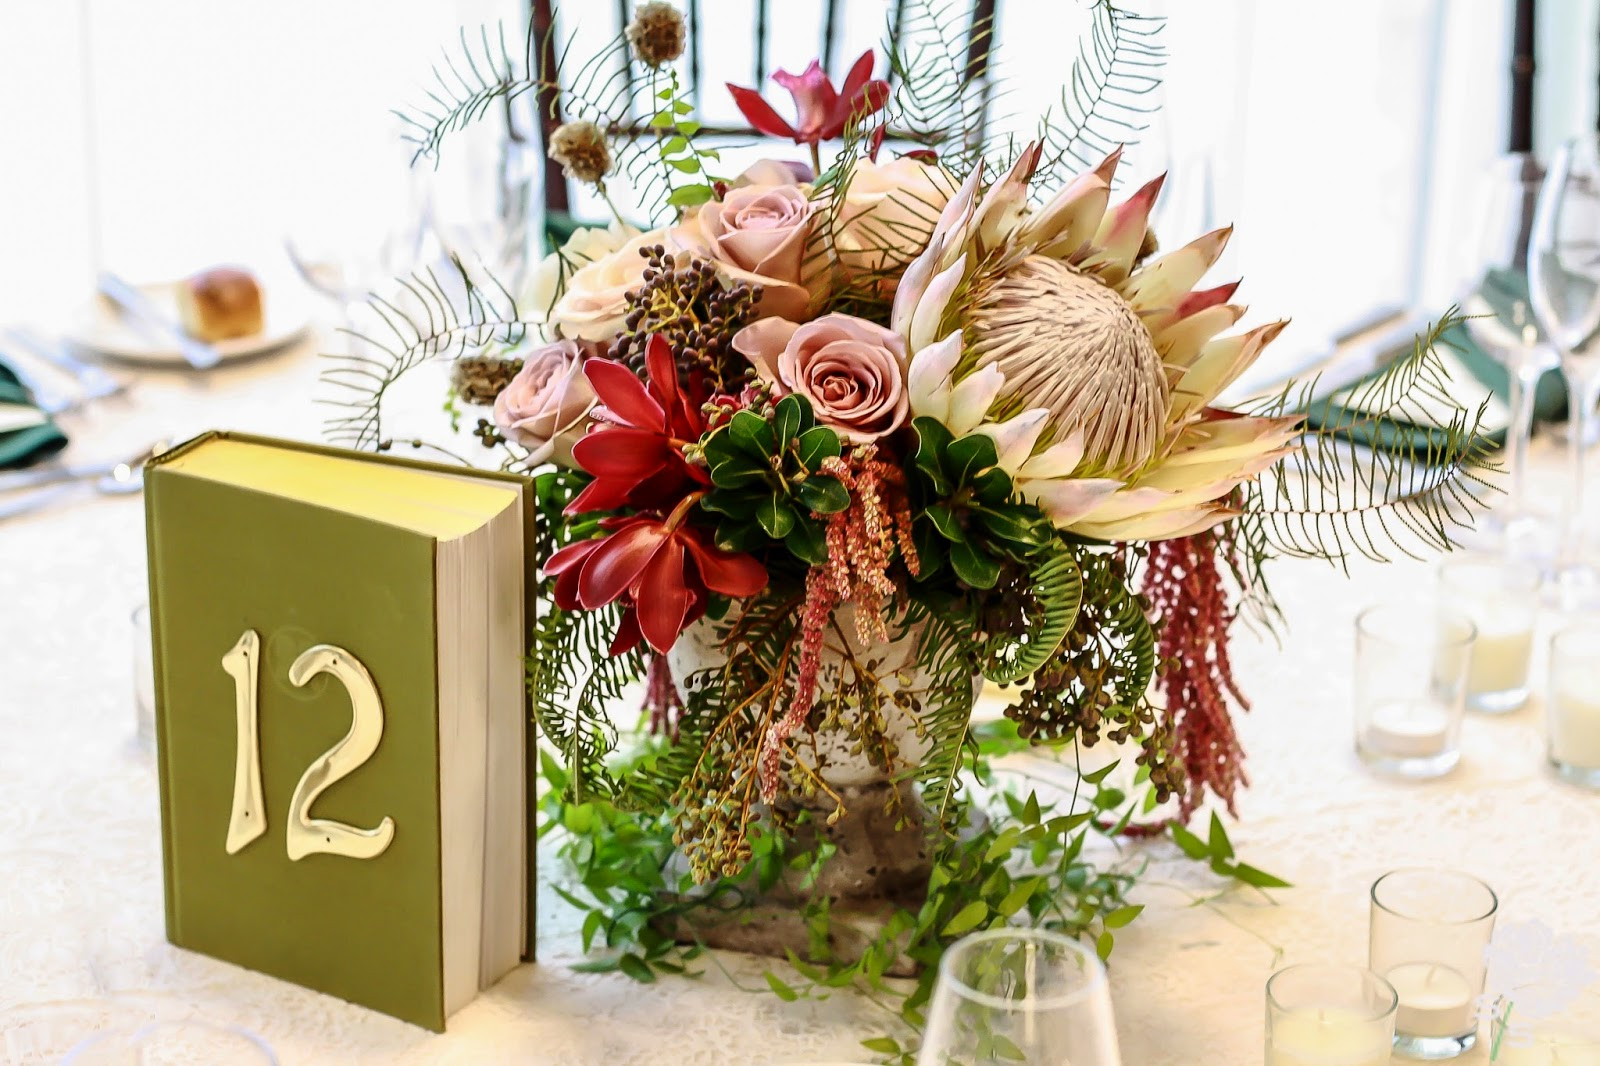 The Roundhouse Wedding - Beacon, NY - Hudson Valley Wedding - Table Centerpiece - Protea, Orchid, Amaranthus - Wedding Flowers - Splendid Stems Floral Designs